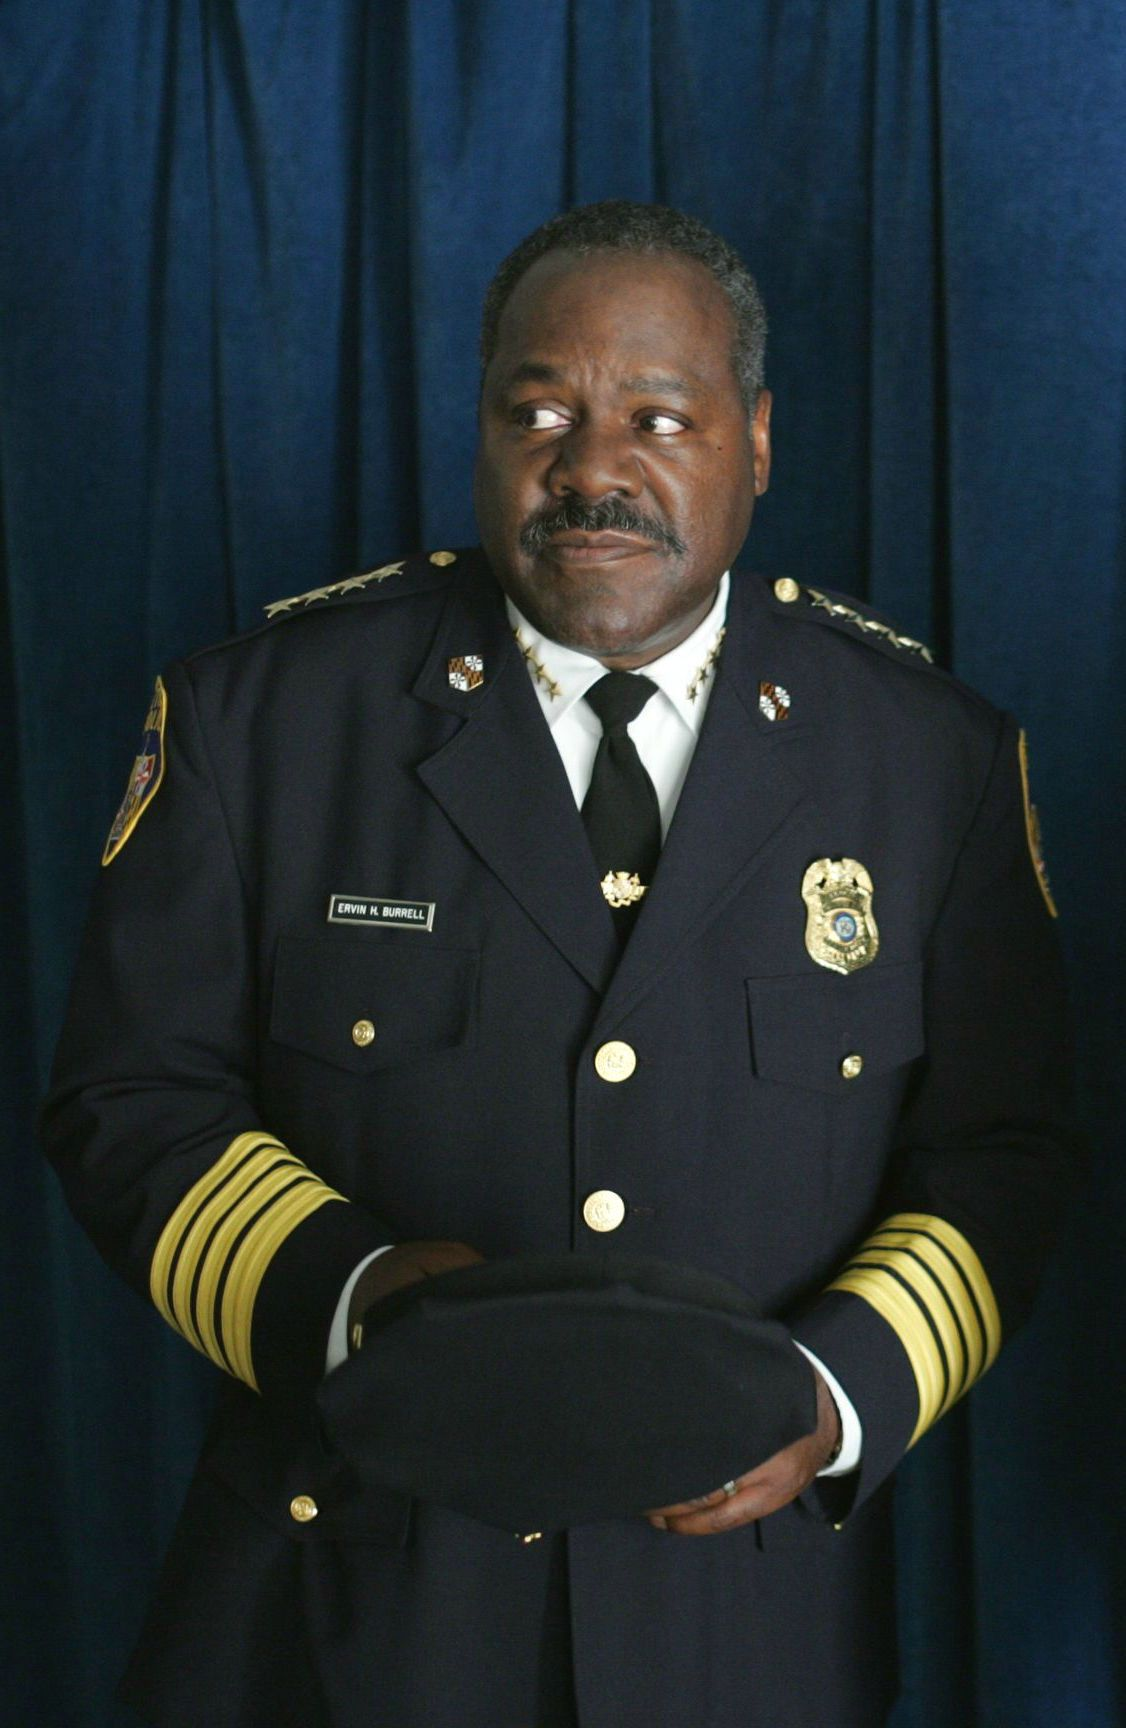 Frankie Faison as Commissioner Ervin Burrell in The Wire. Ervin ...